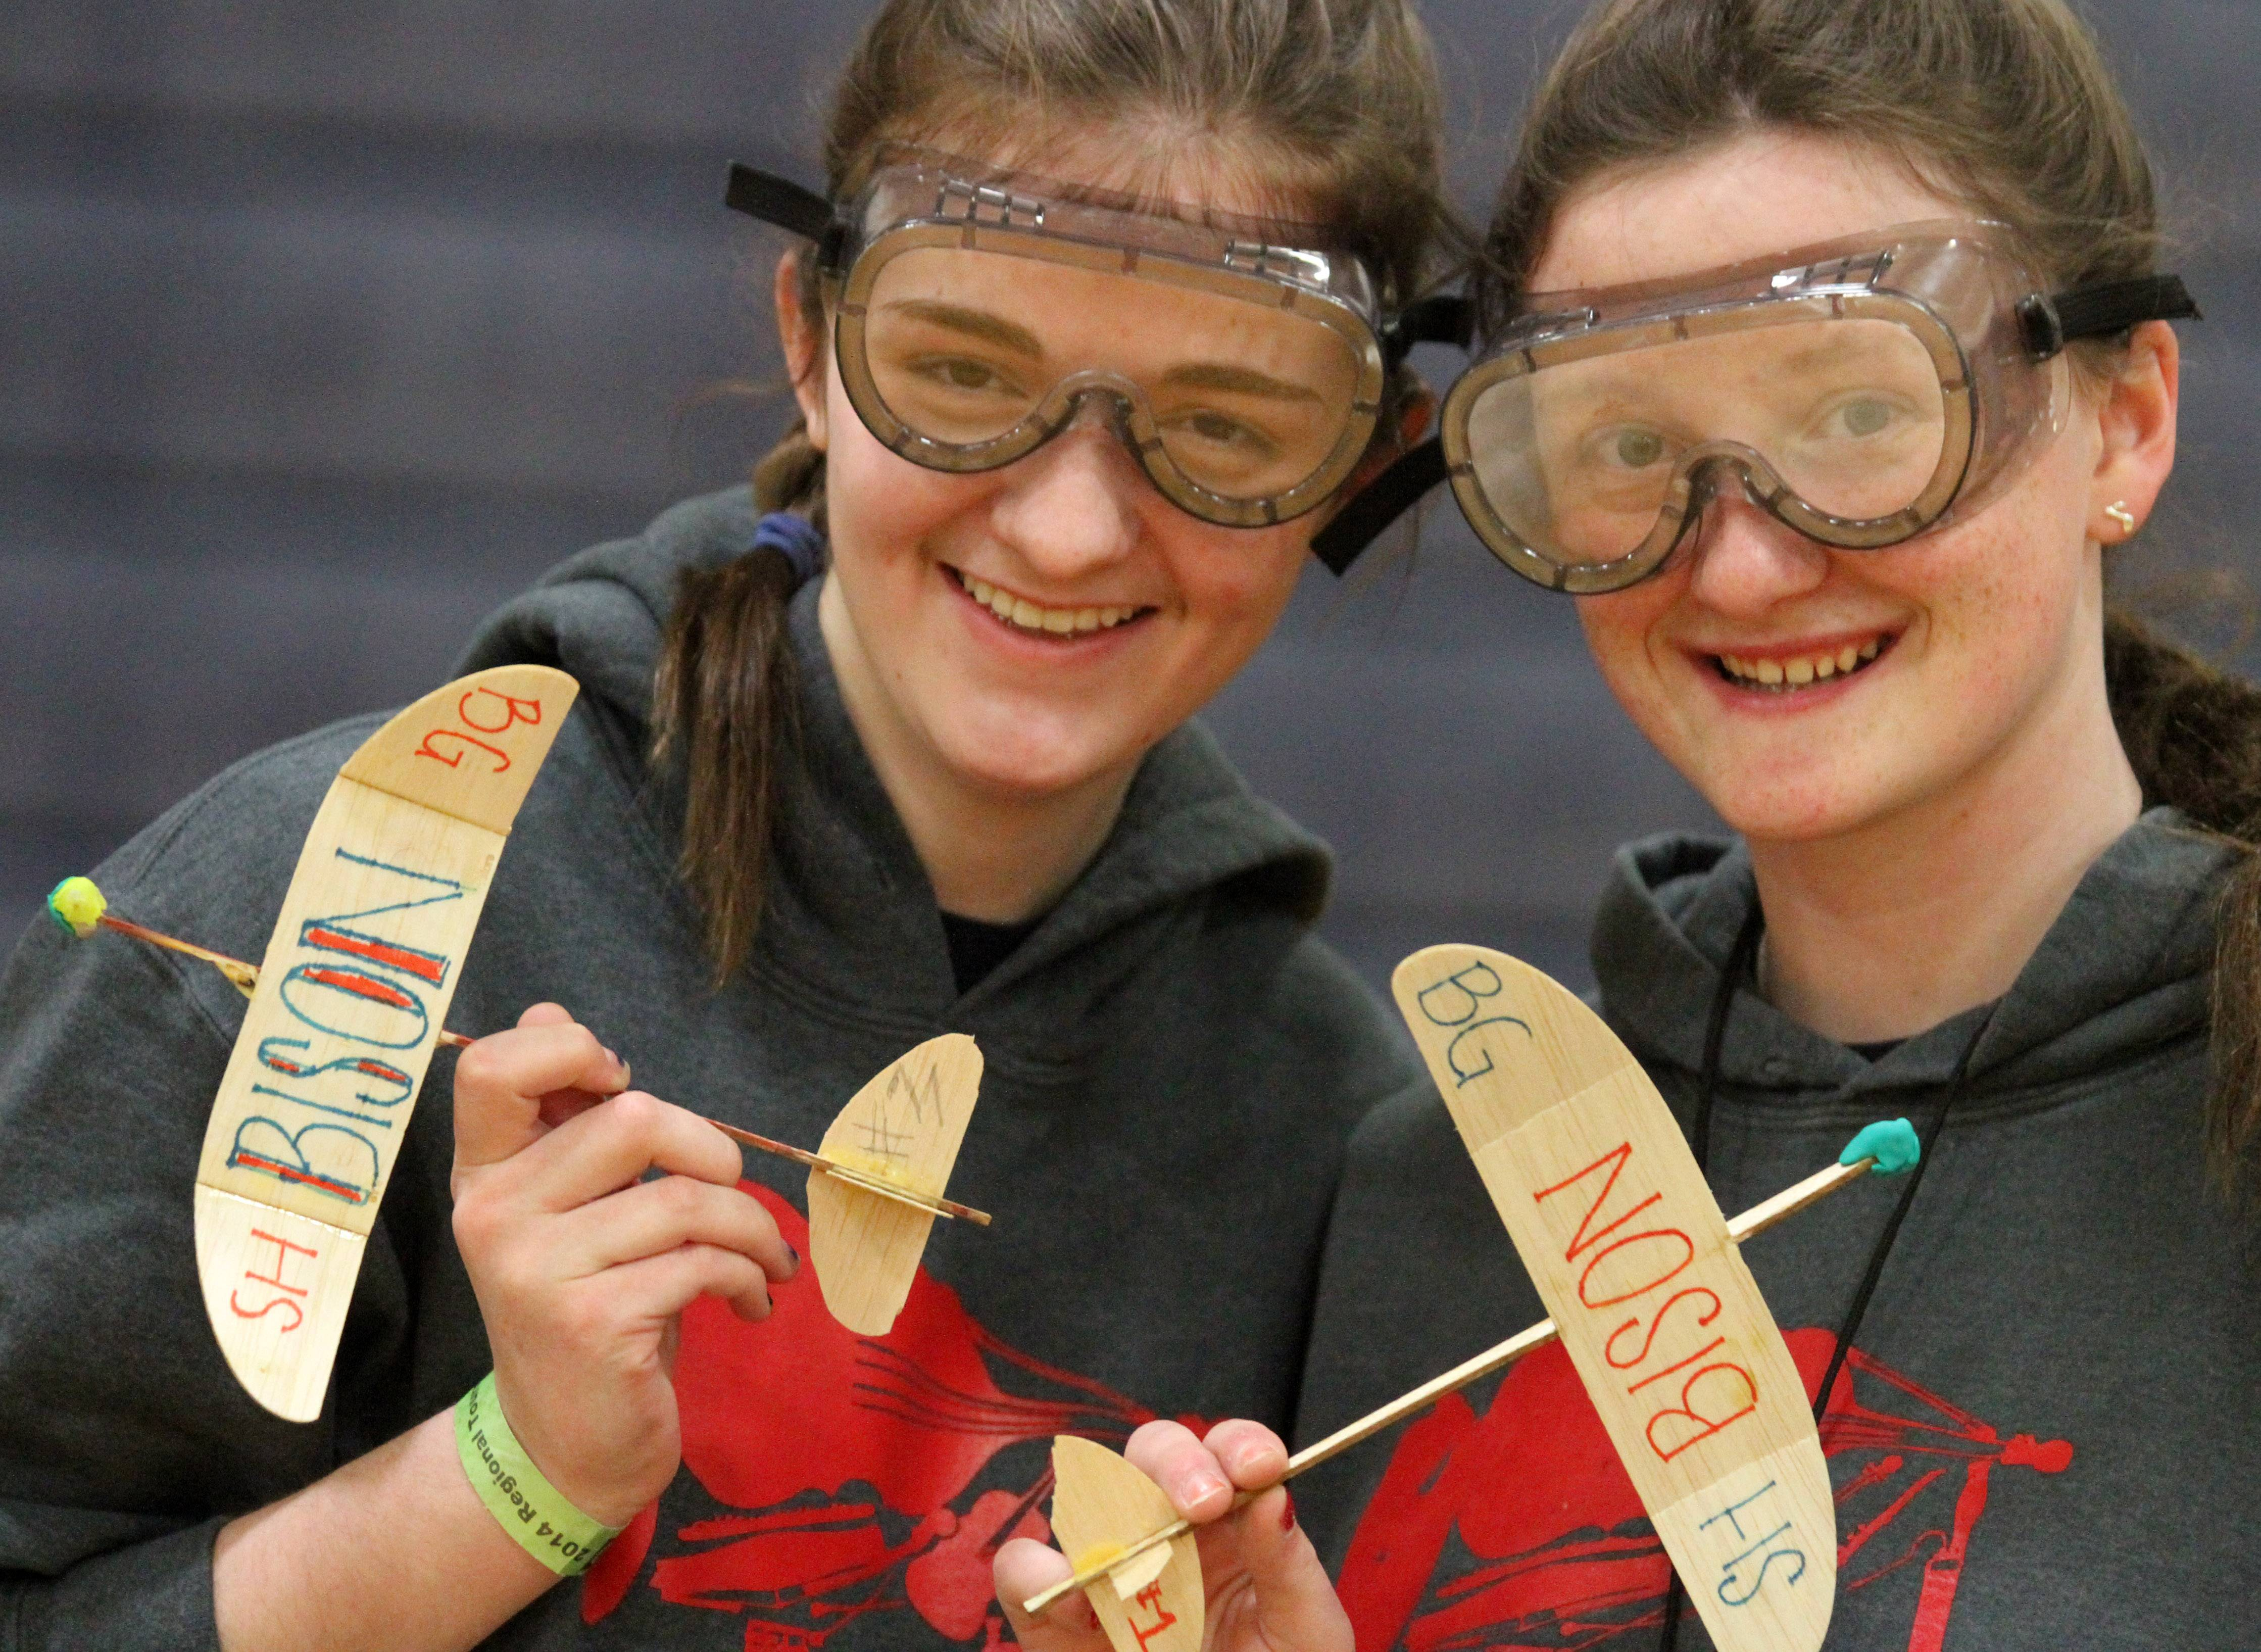 Buffalo Grove High School juniors Elizabeth Daulton and Erin Beugger competed with their elastic-launched, glider-c planes at the Grayslake Regional Science Olympiad on Saturday at College of Lake County. Students came from middle and high schools from the Northwest suburbs.